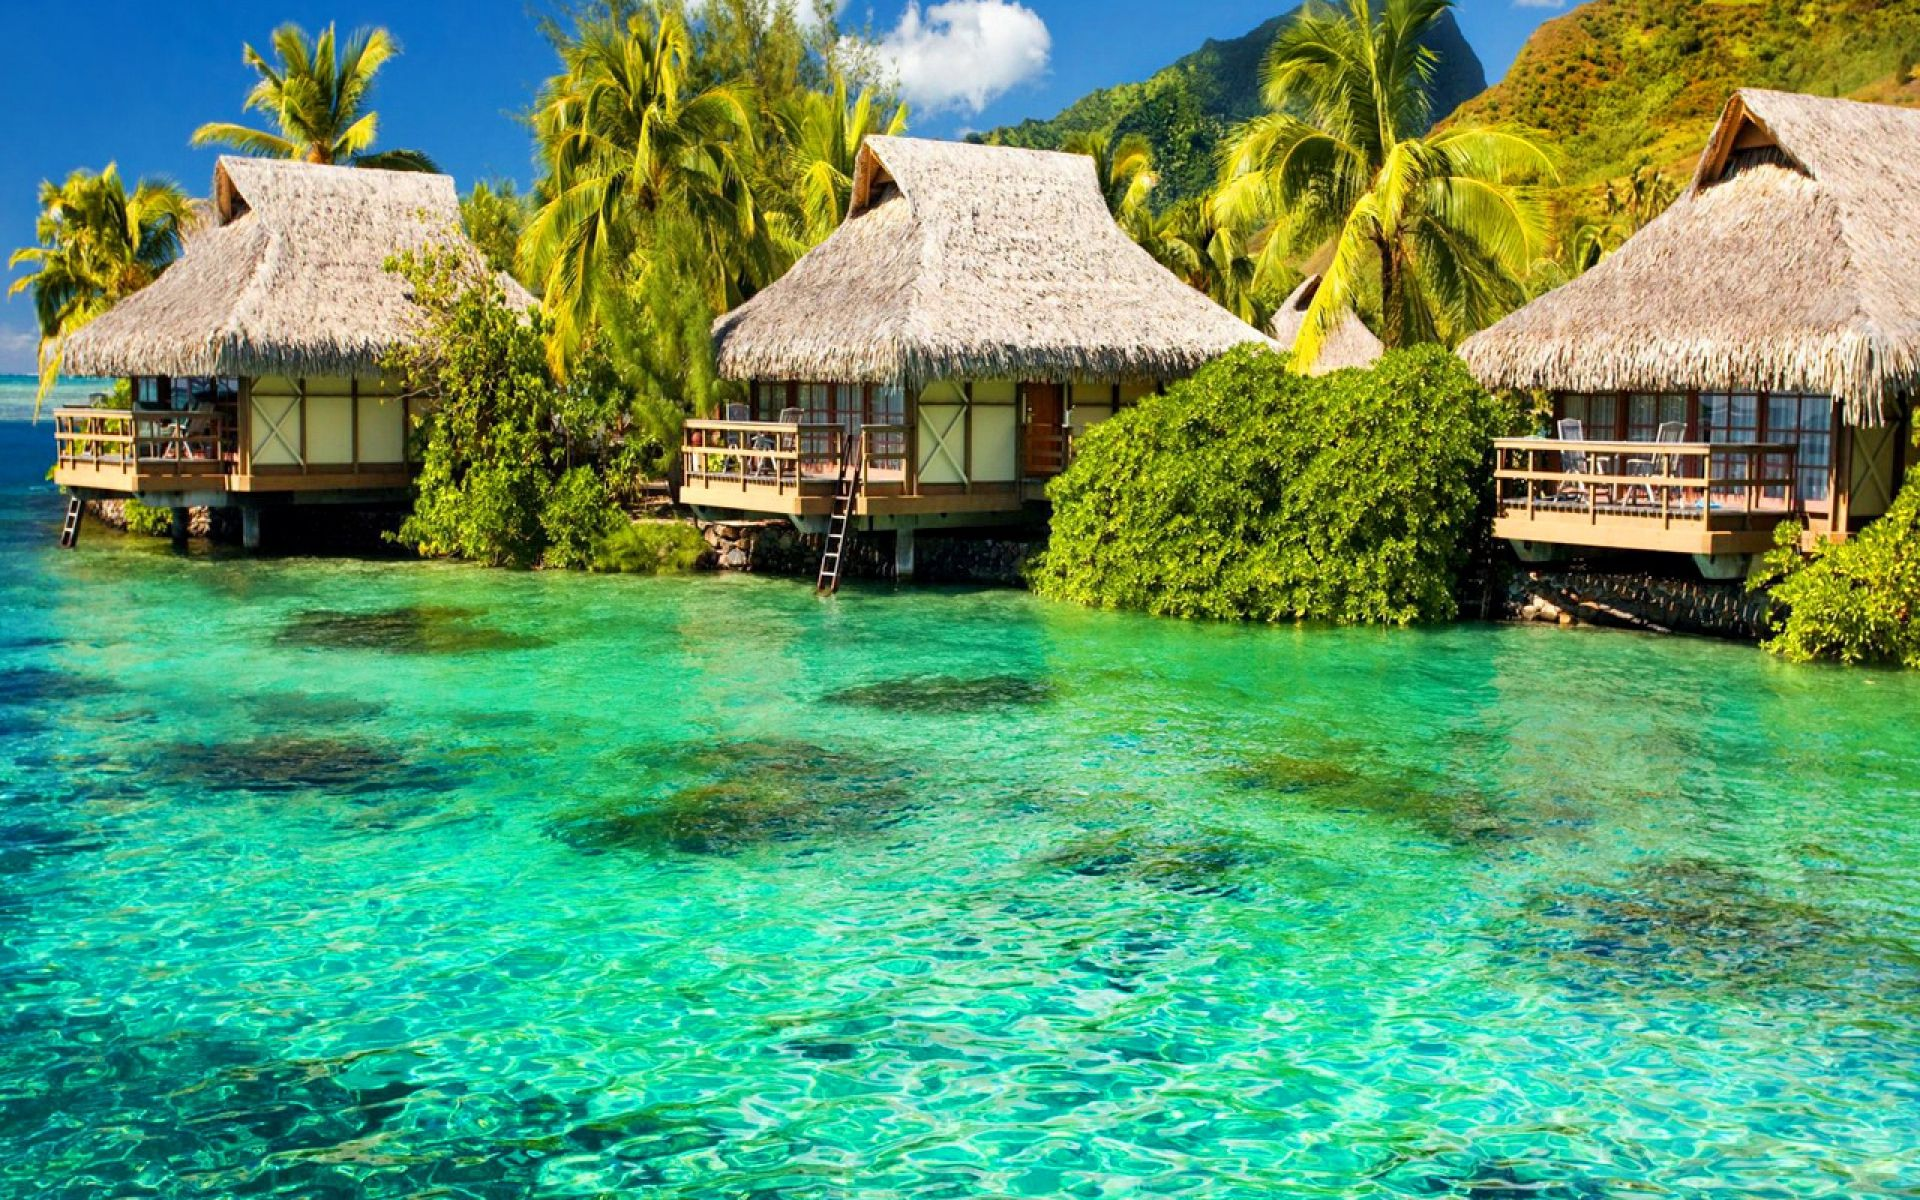 Philippines places home beaches philippines tropical for Wallpaper home philippines